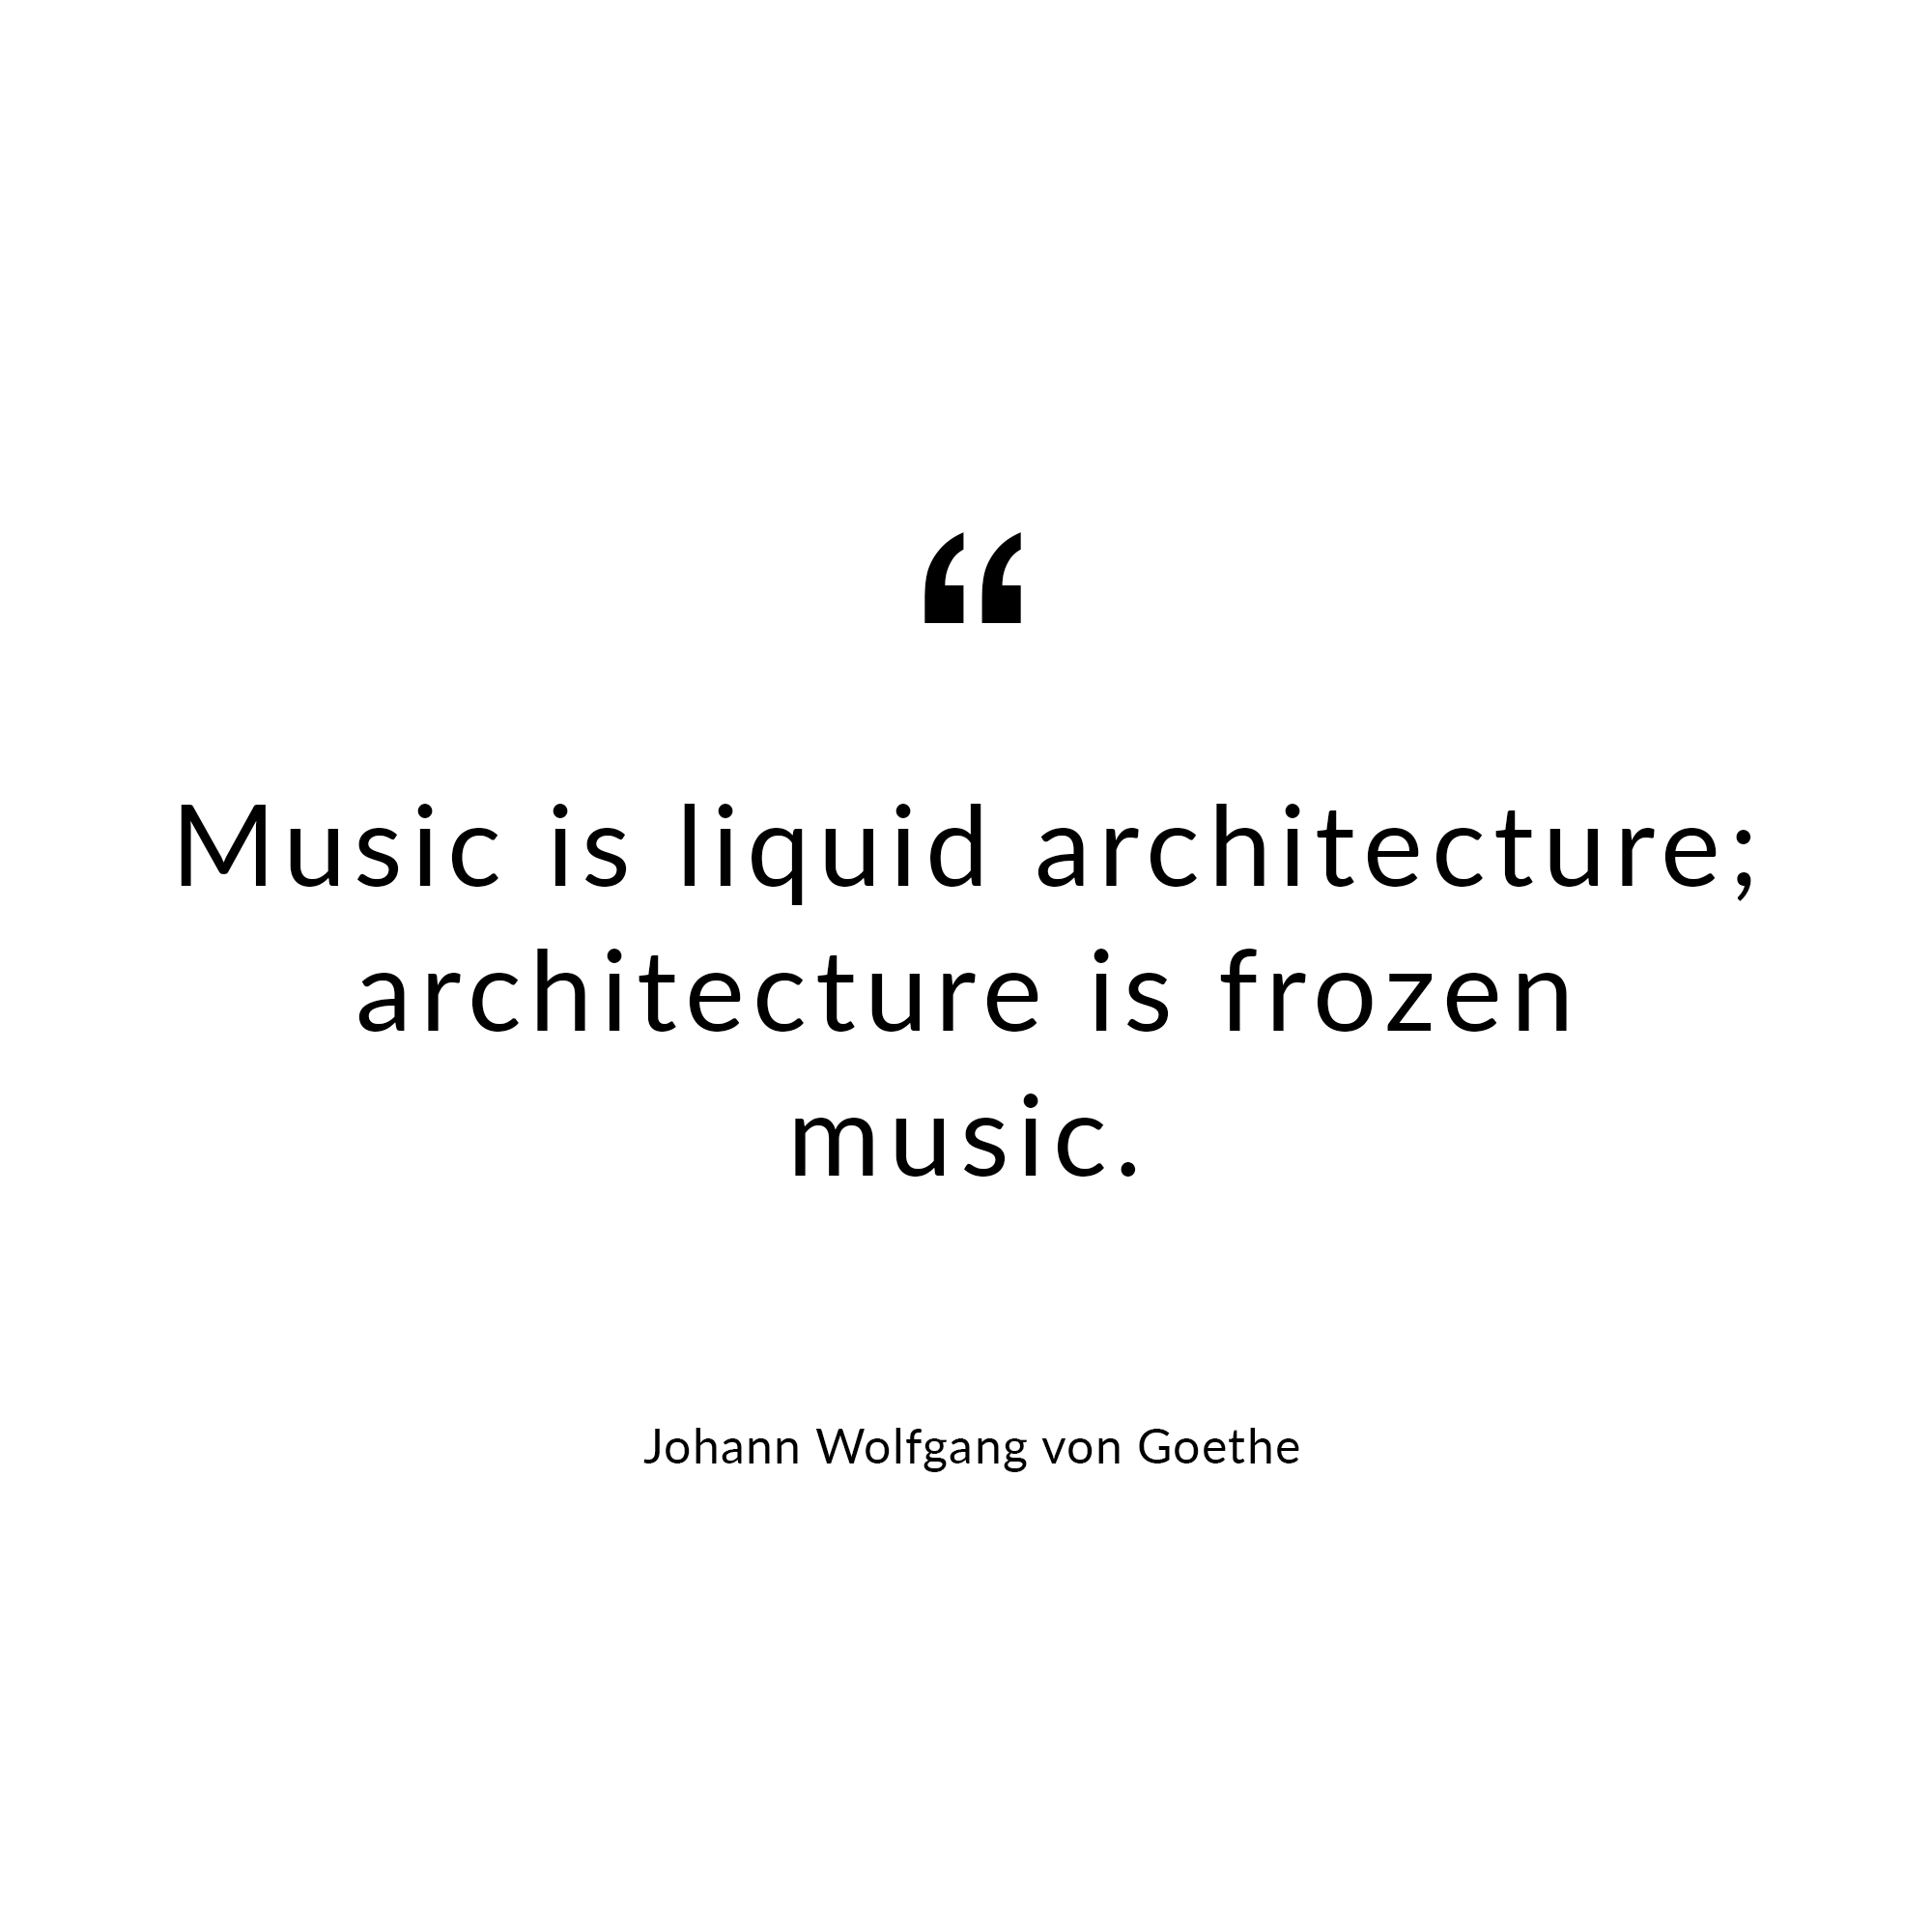 quote by johann wolfgang von goethe goethe vongoethe design architecture architect. Black Bedroom Furniture Sets. Home Design Ideas